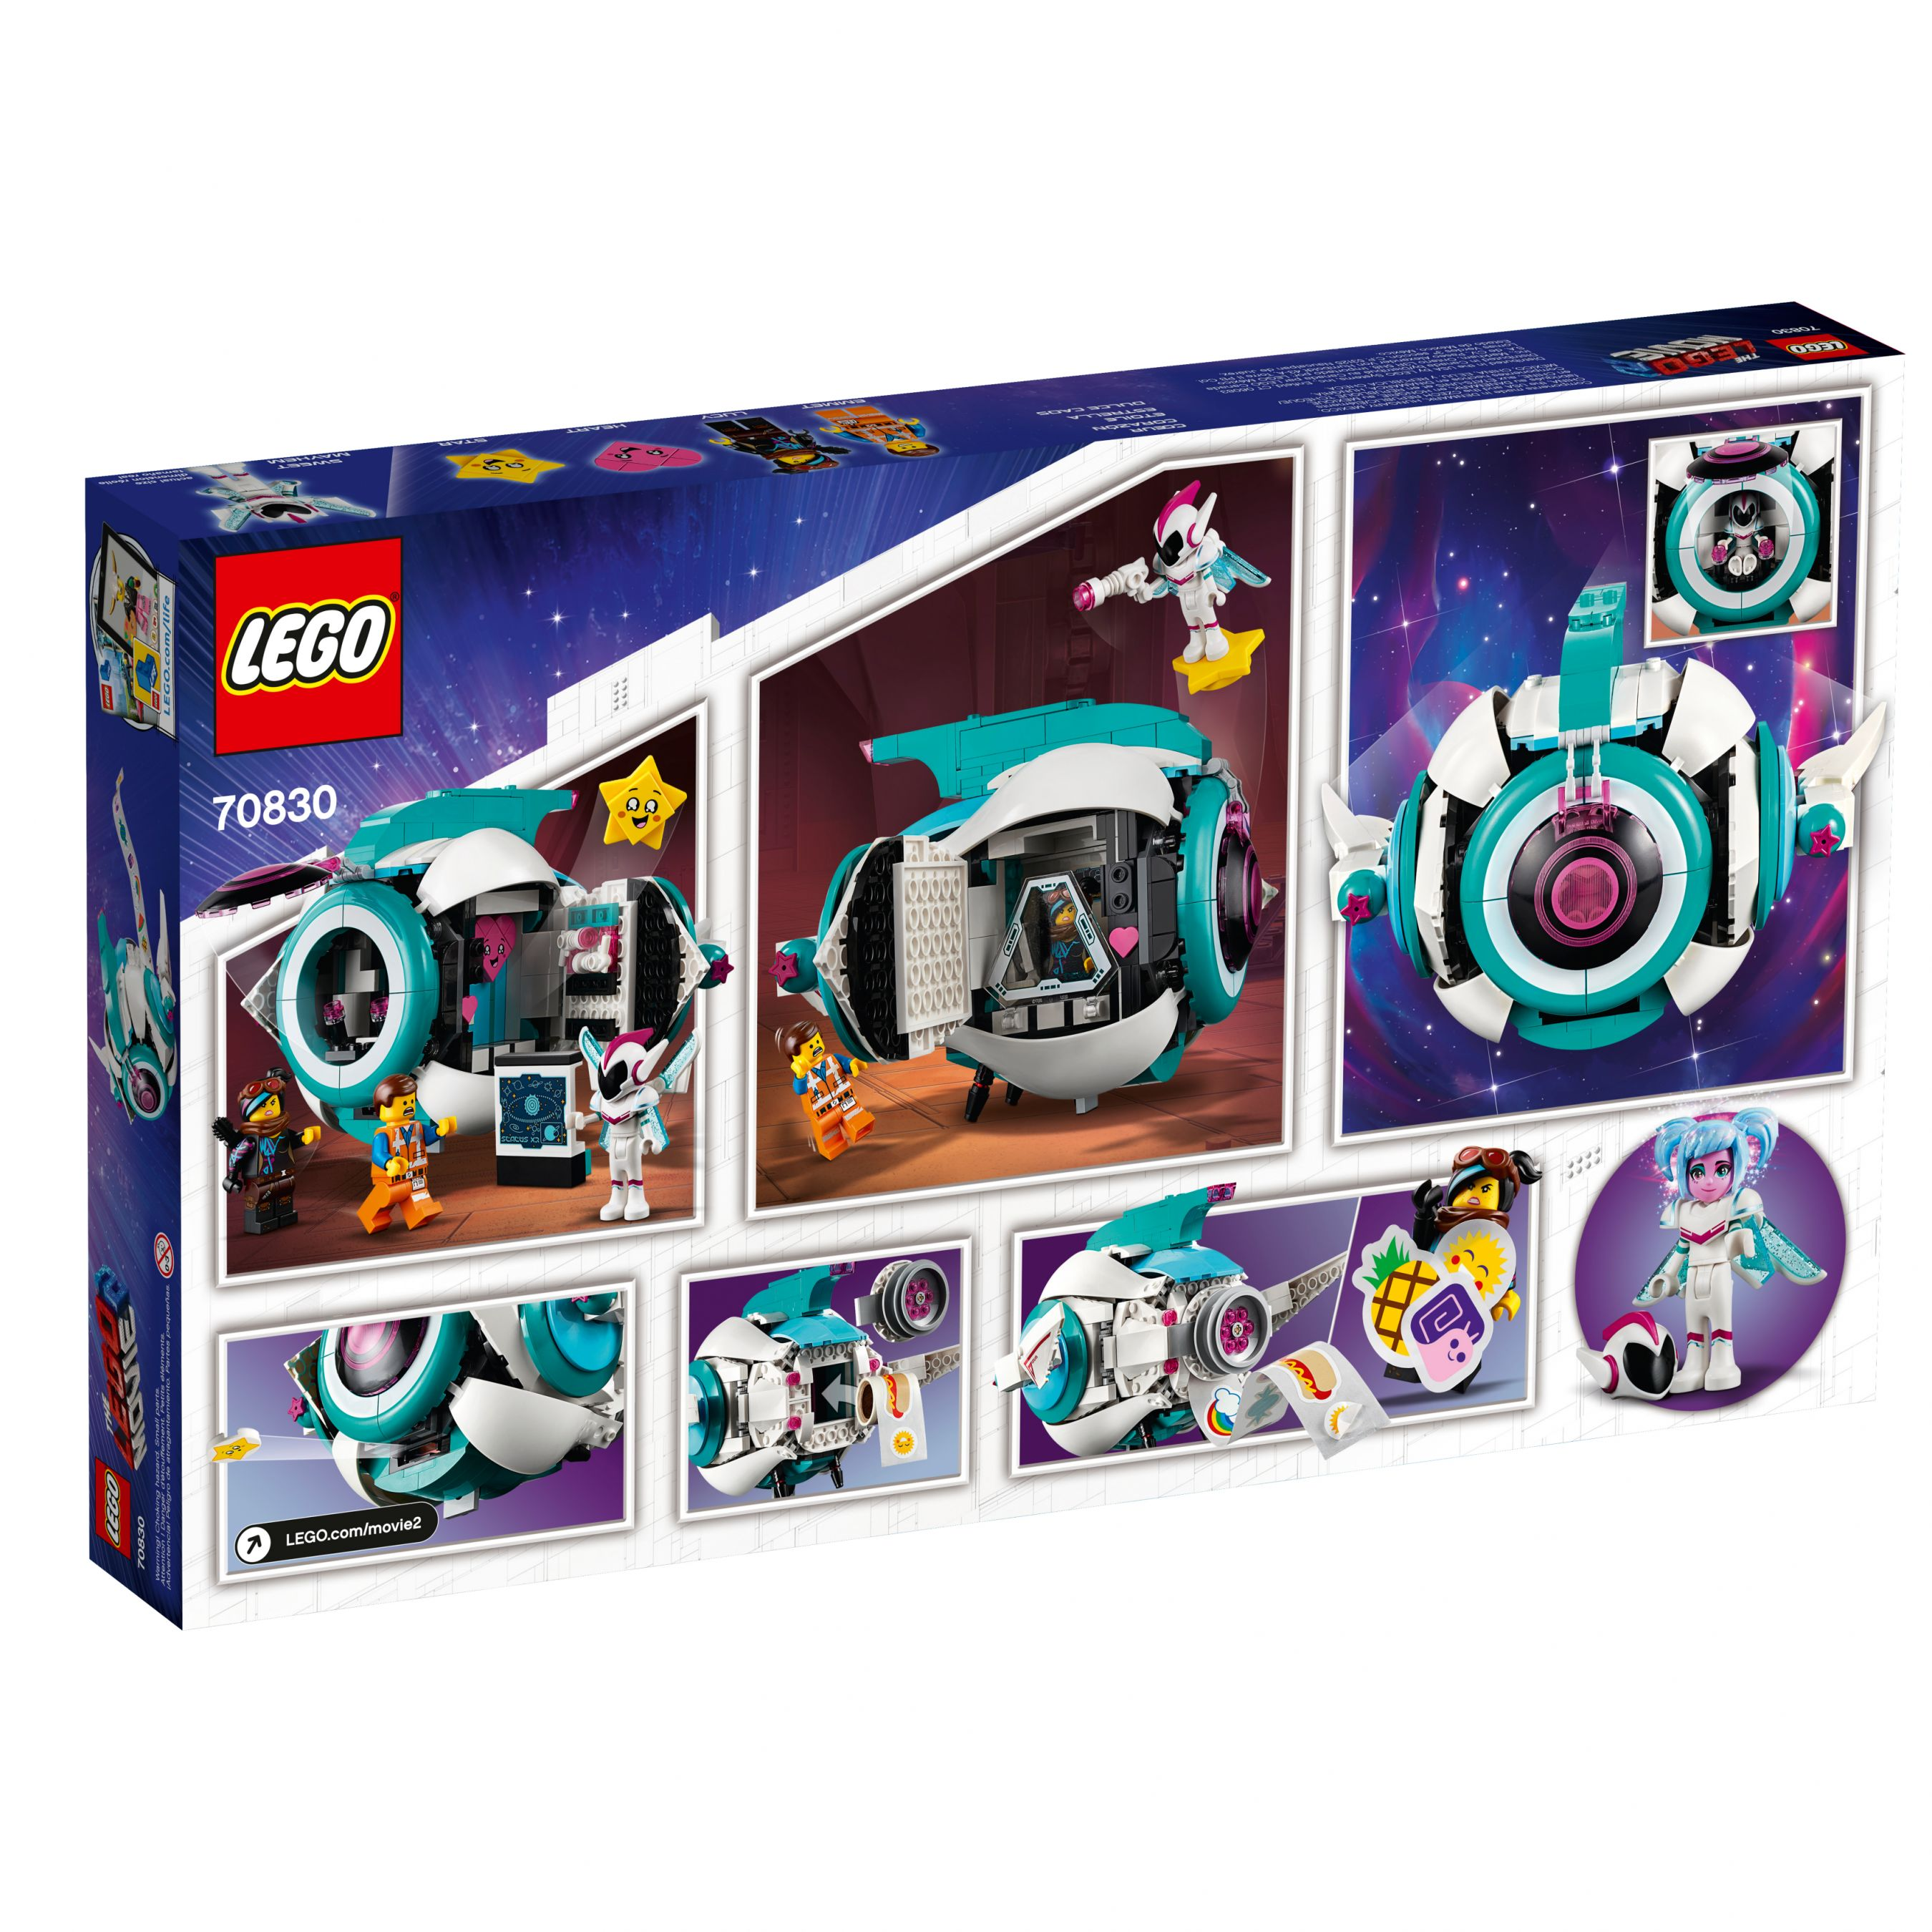 LEGO The LEGO Movie 2 70830 Sweet Mischmaschs Schwester-Raumschiff LEGO_70830_alt4.jpg